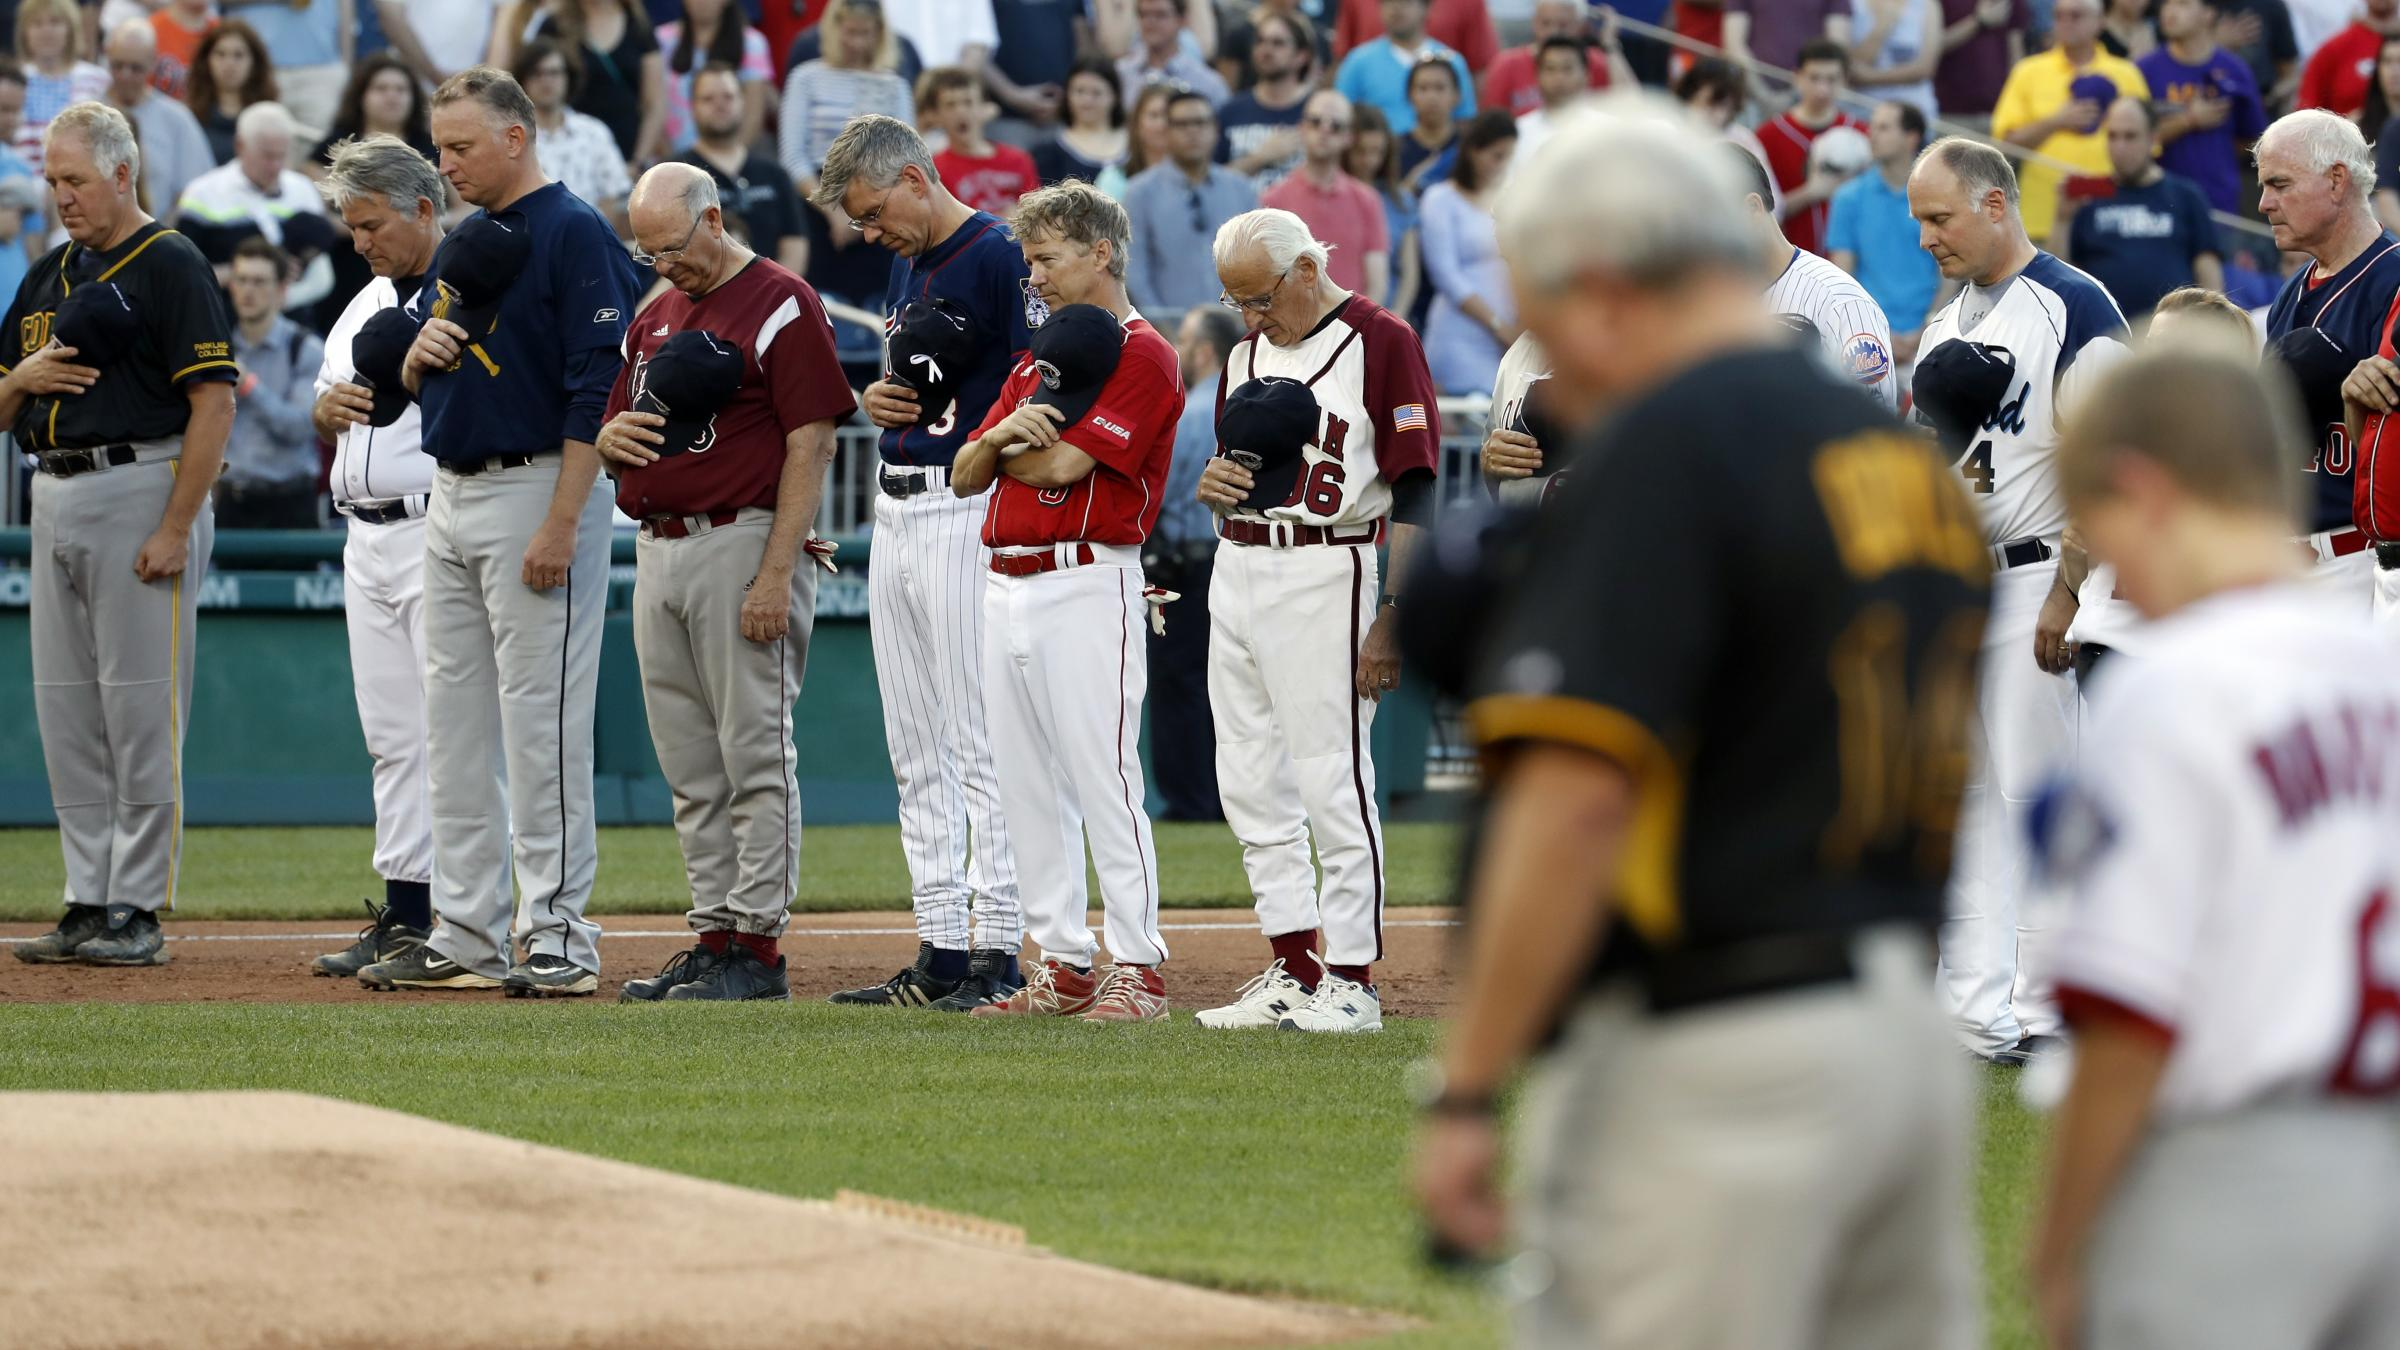 Annual US Congress baseball game brings unity after shooting